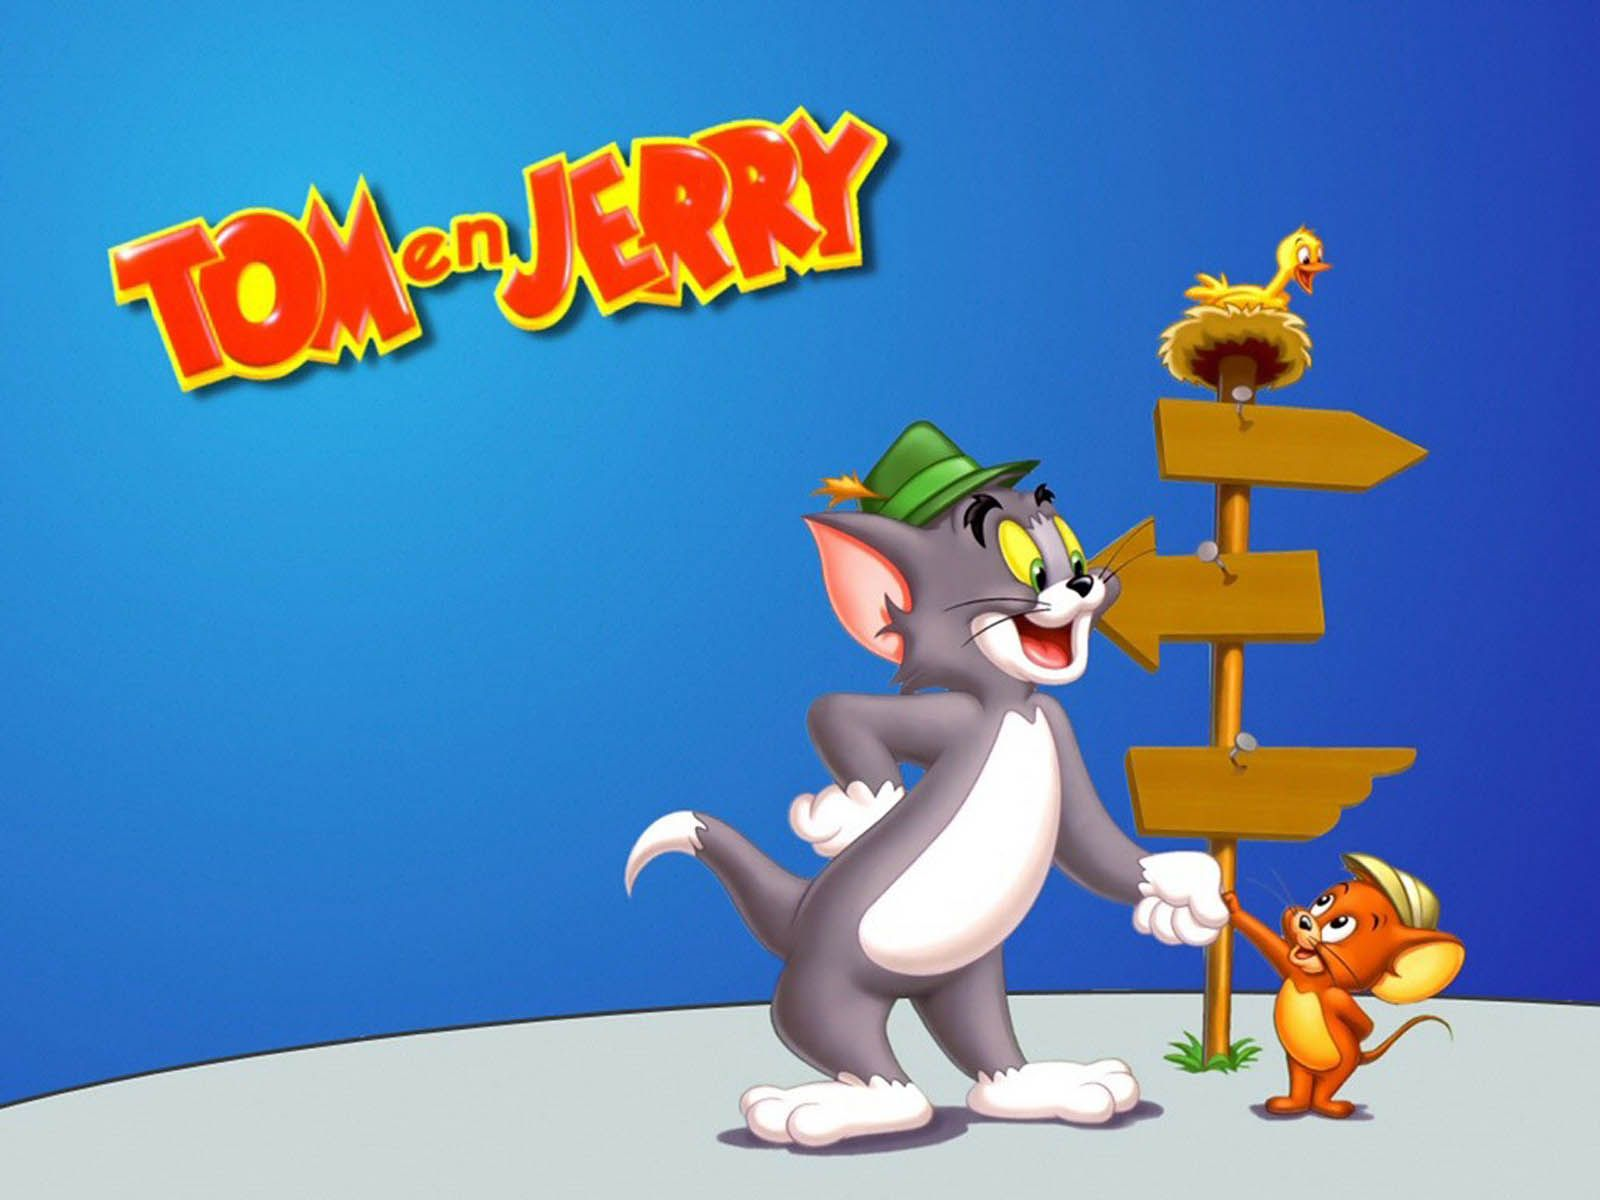 Tom y Jerry Tom and Jerry en ingls son dos personajes animados